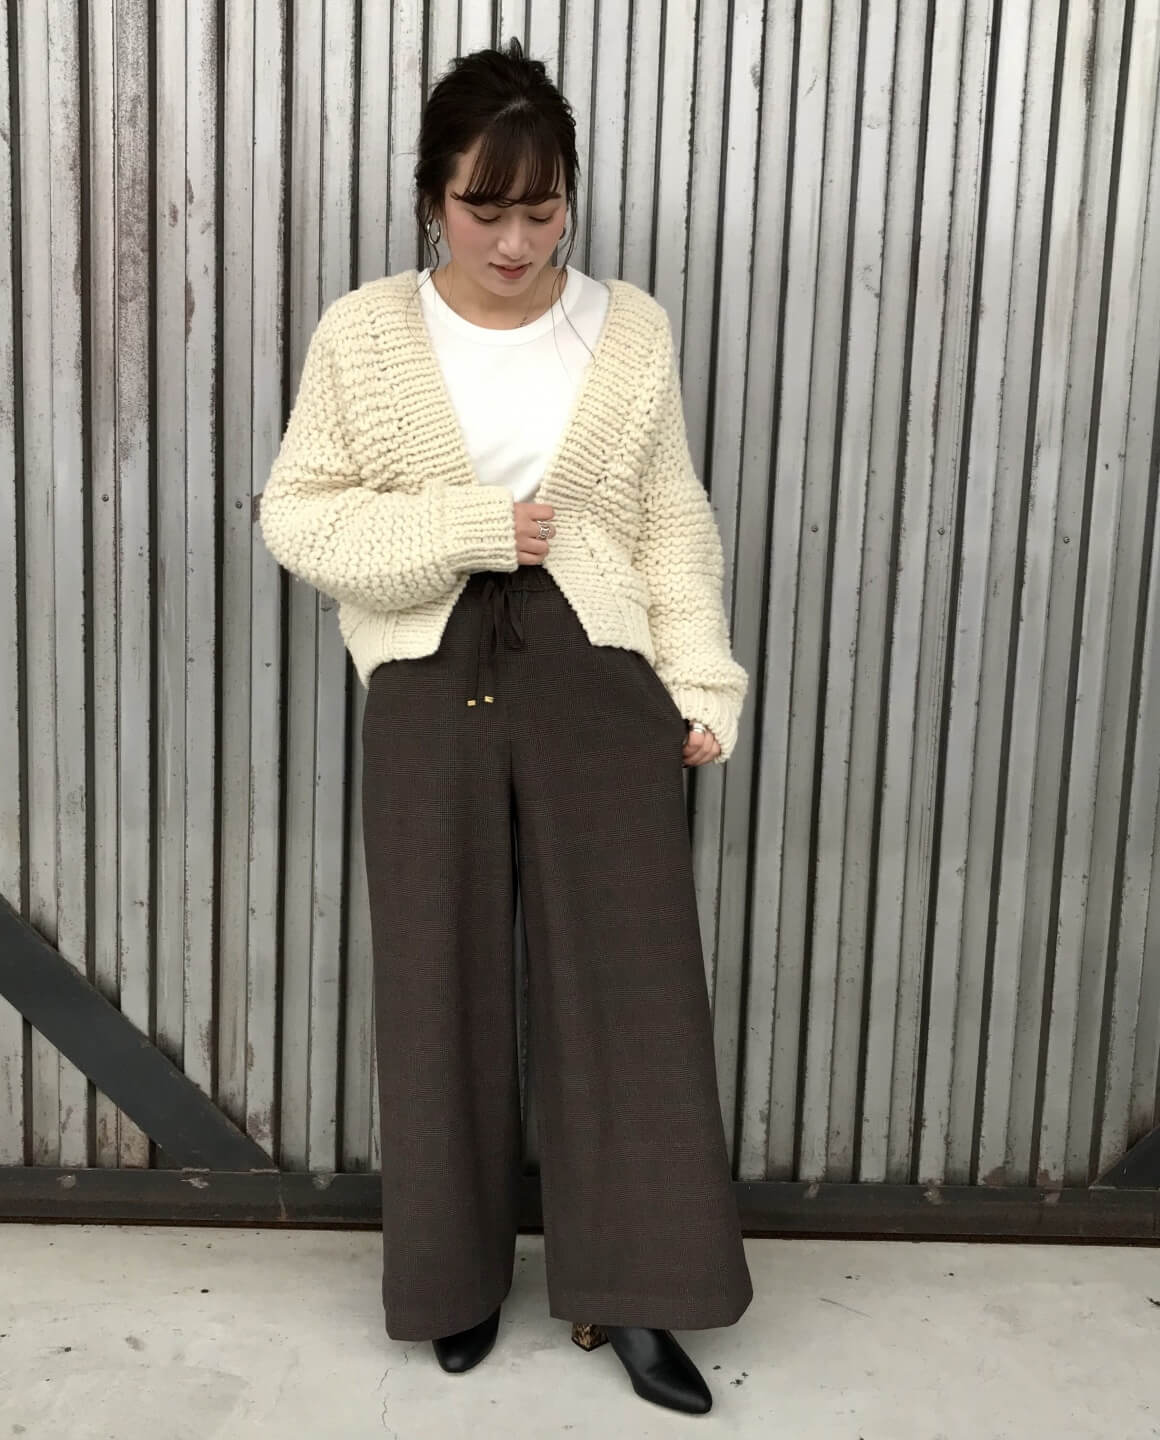 KNIT CARDIGAN STYLE